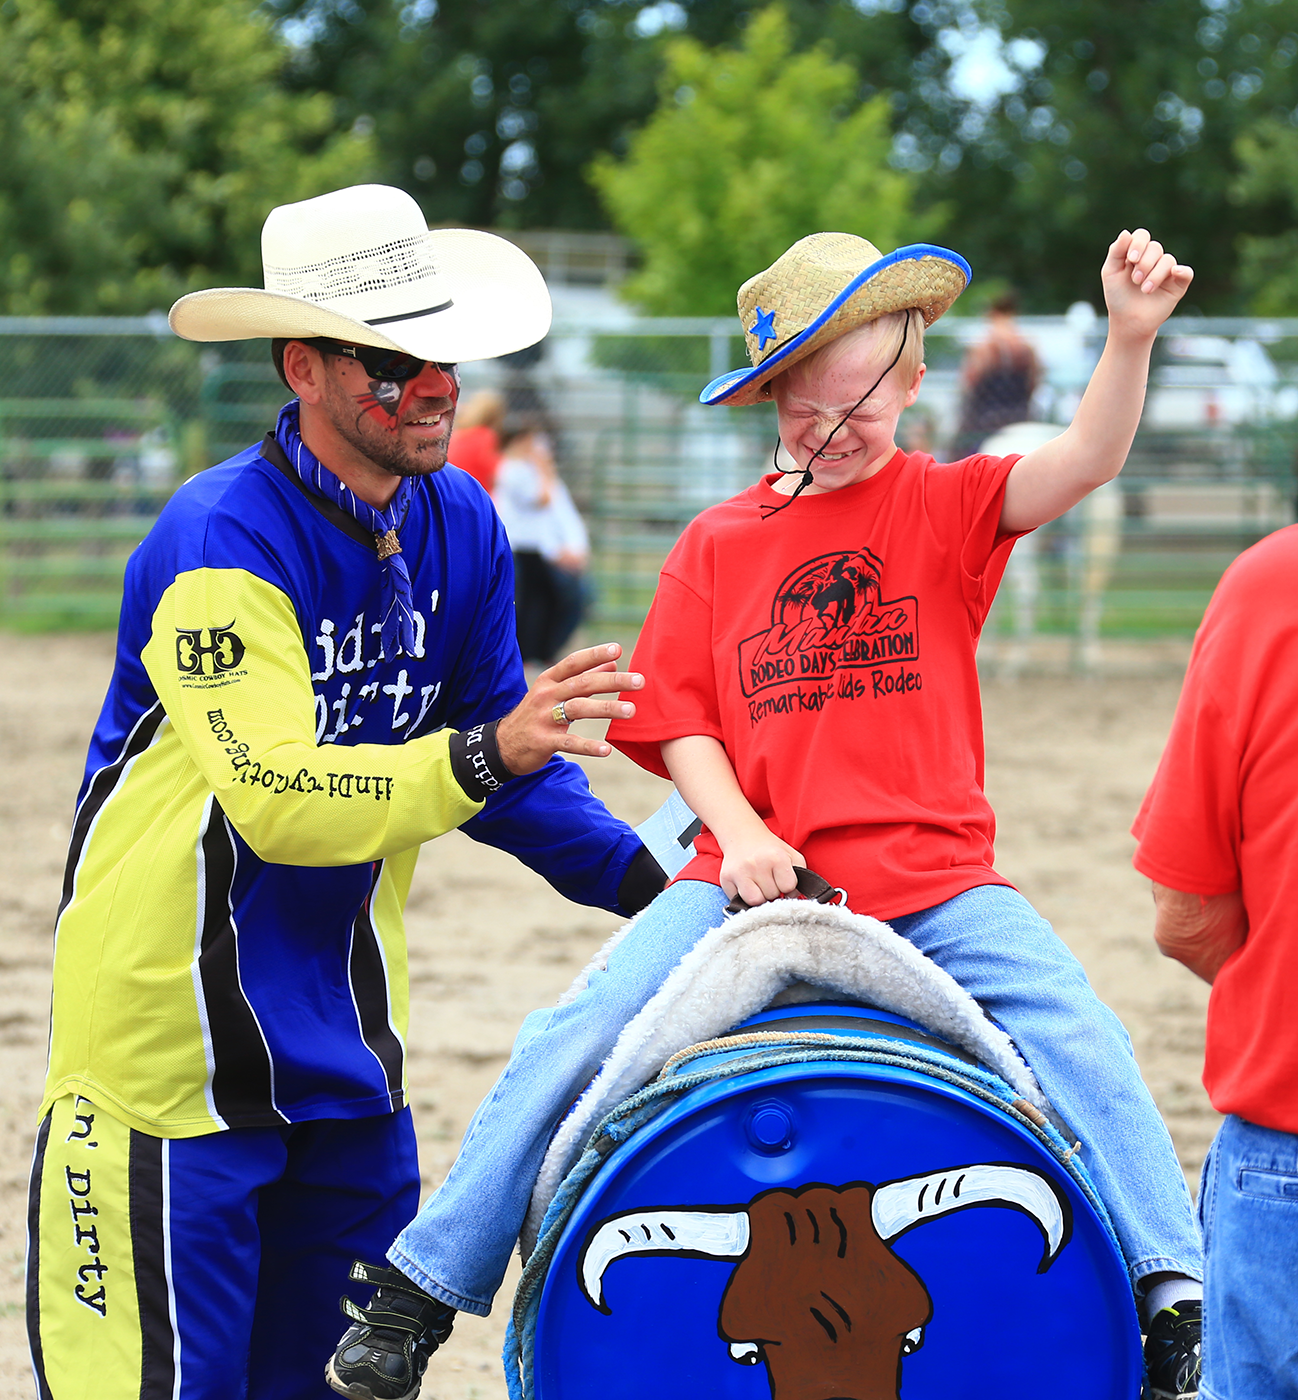 Remarkable Kids Rodeo | MandanRodeo